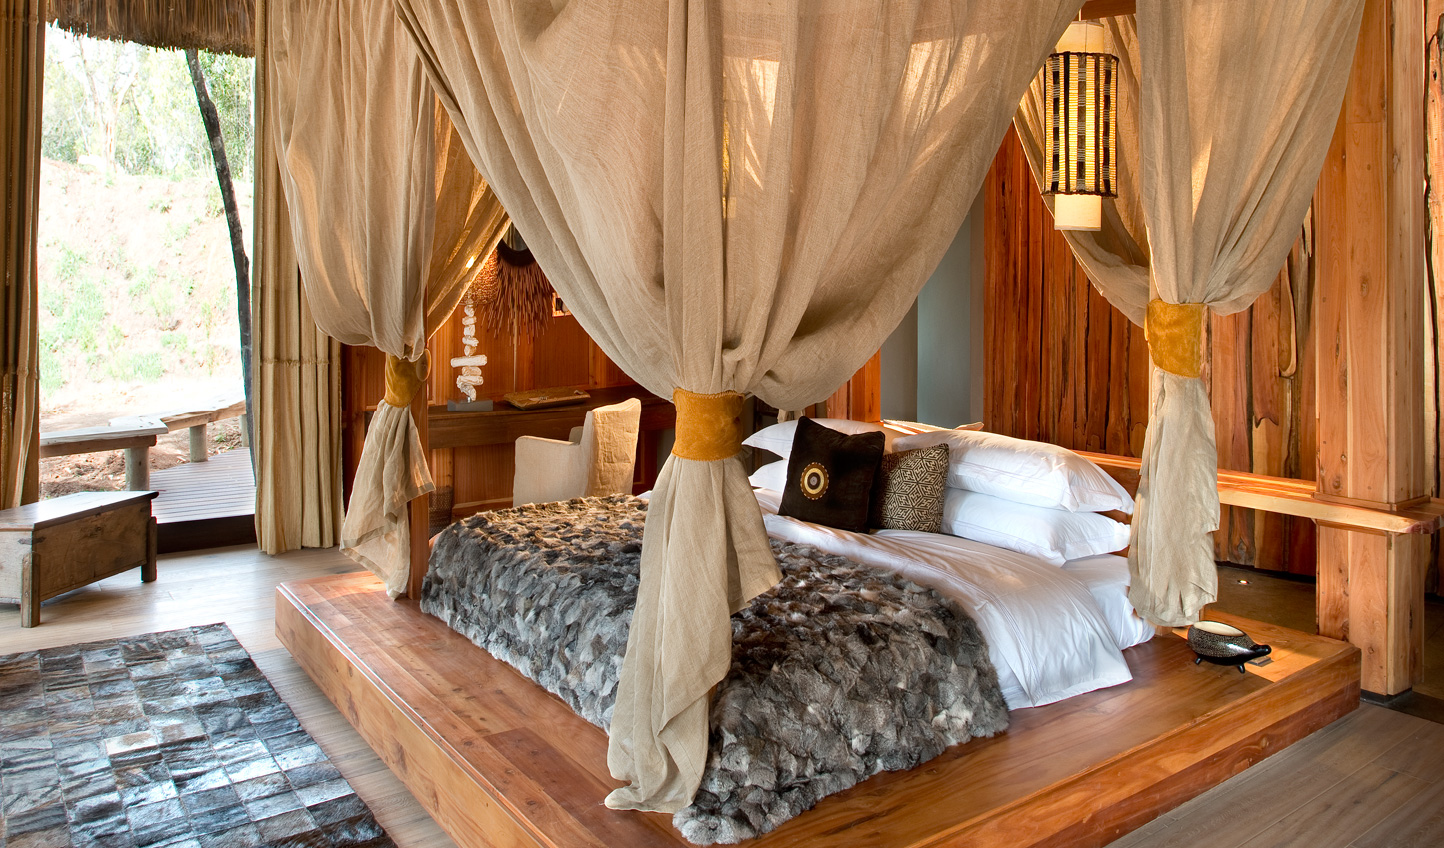 Embrace Sirai's wilder side to luxury in the Treehouse Suites